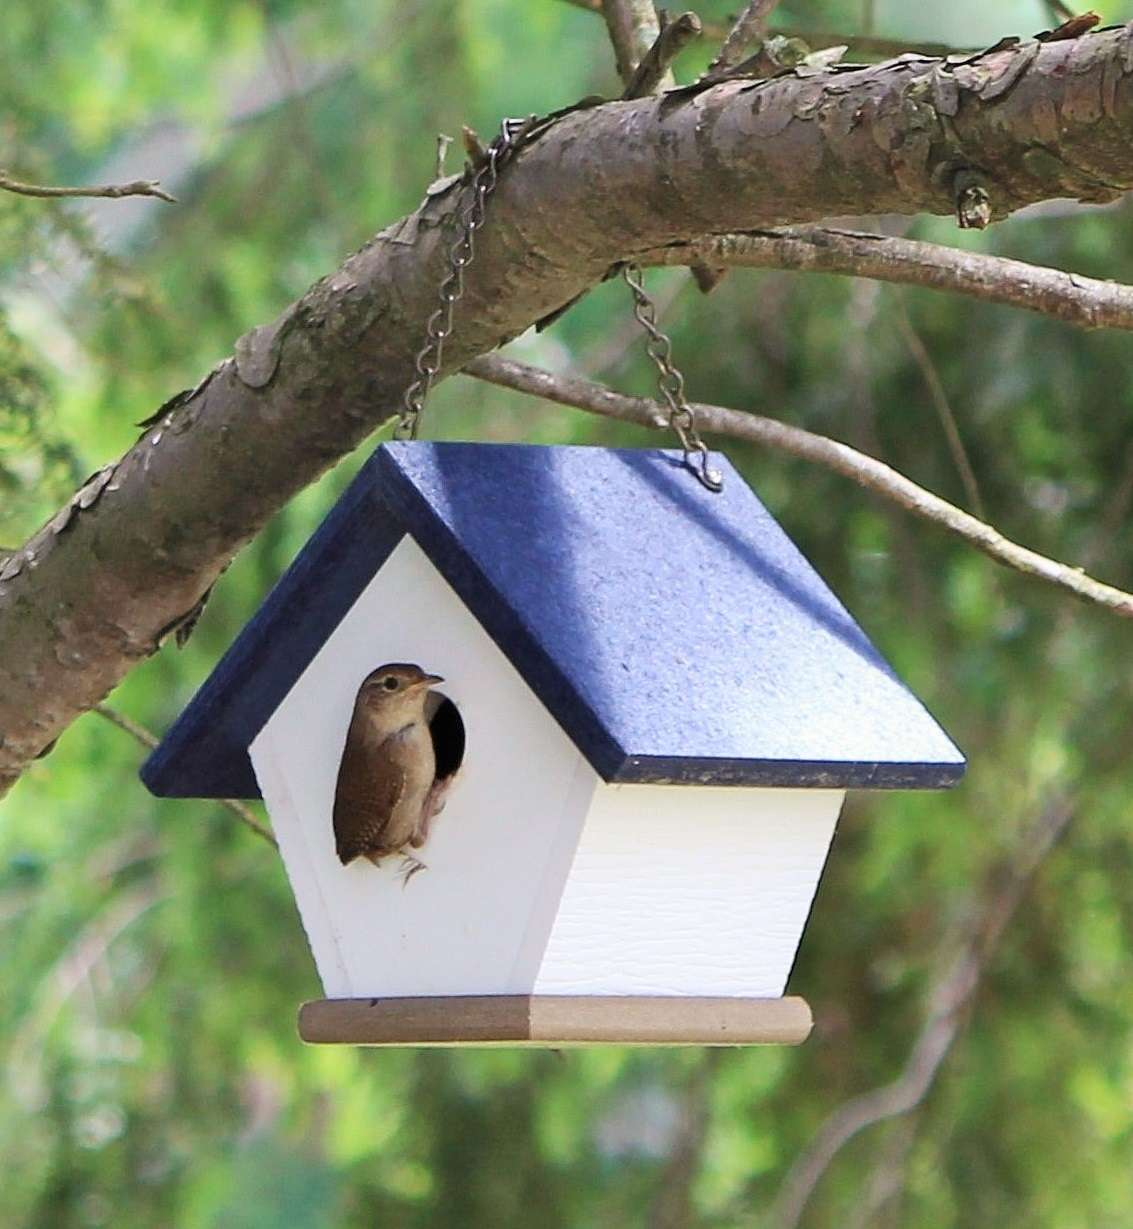 wren perched in bird house hanging in tree